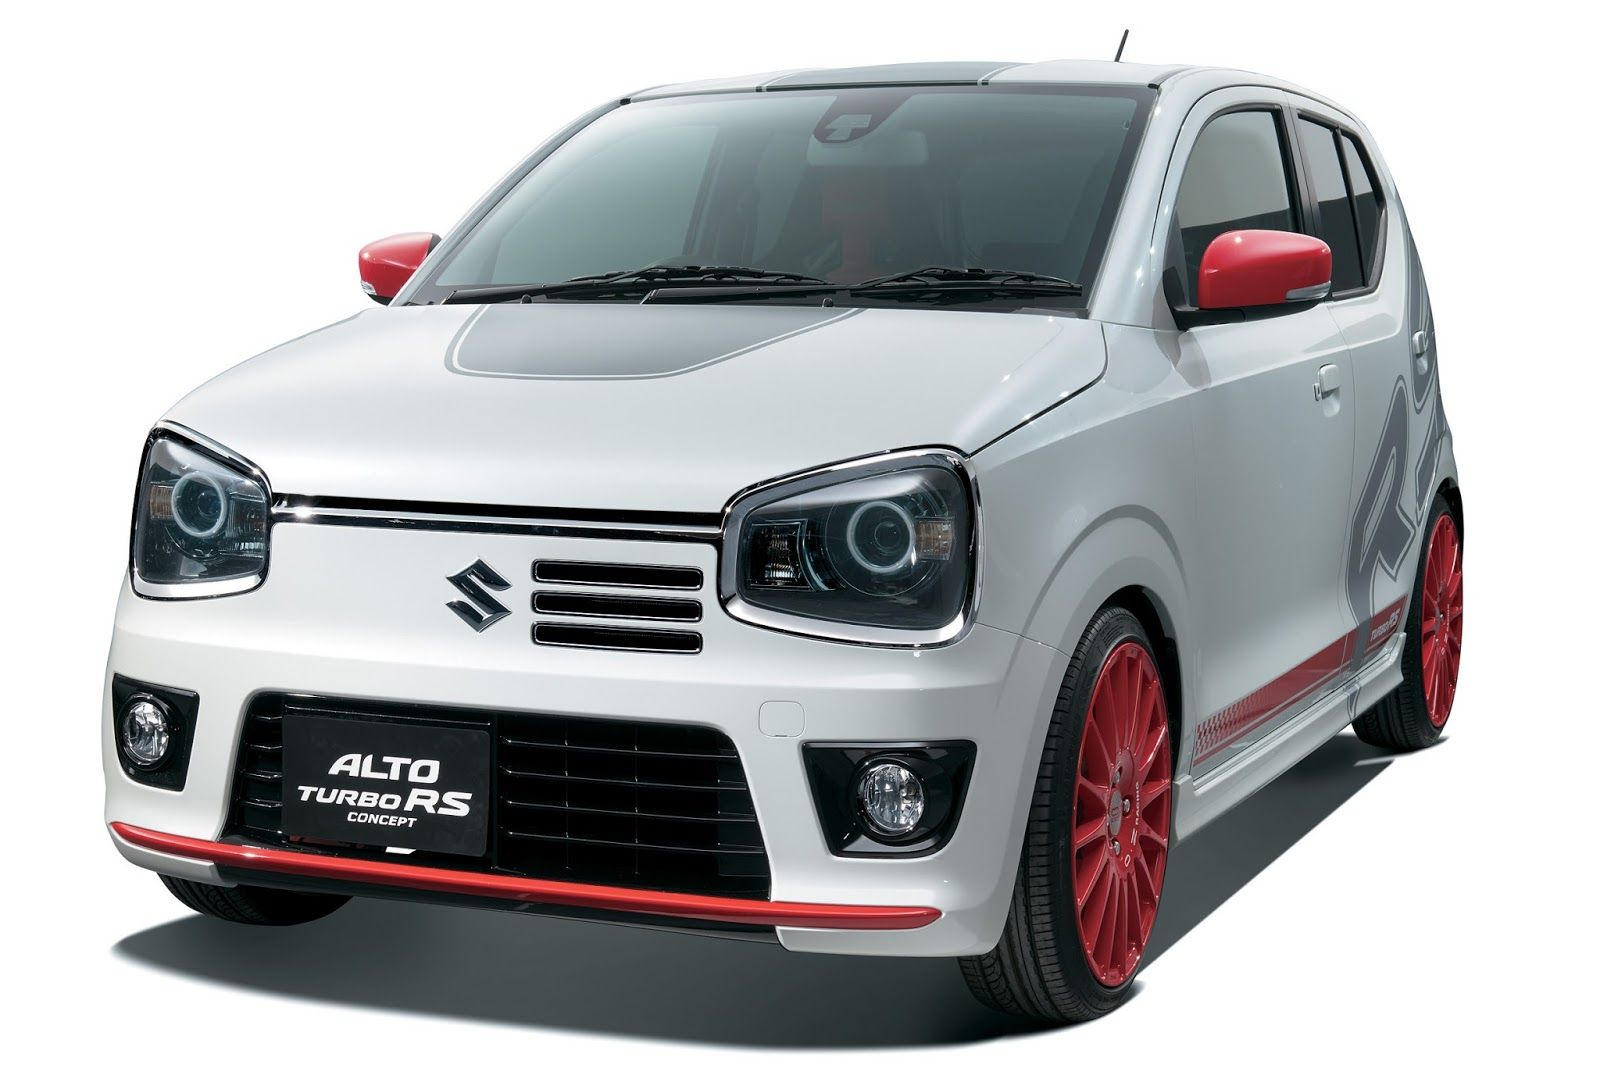 This suzuki alto turbo rs concept is for real